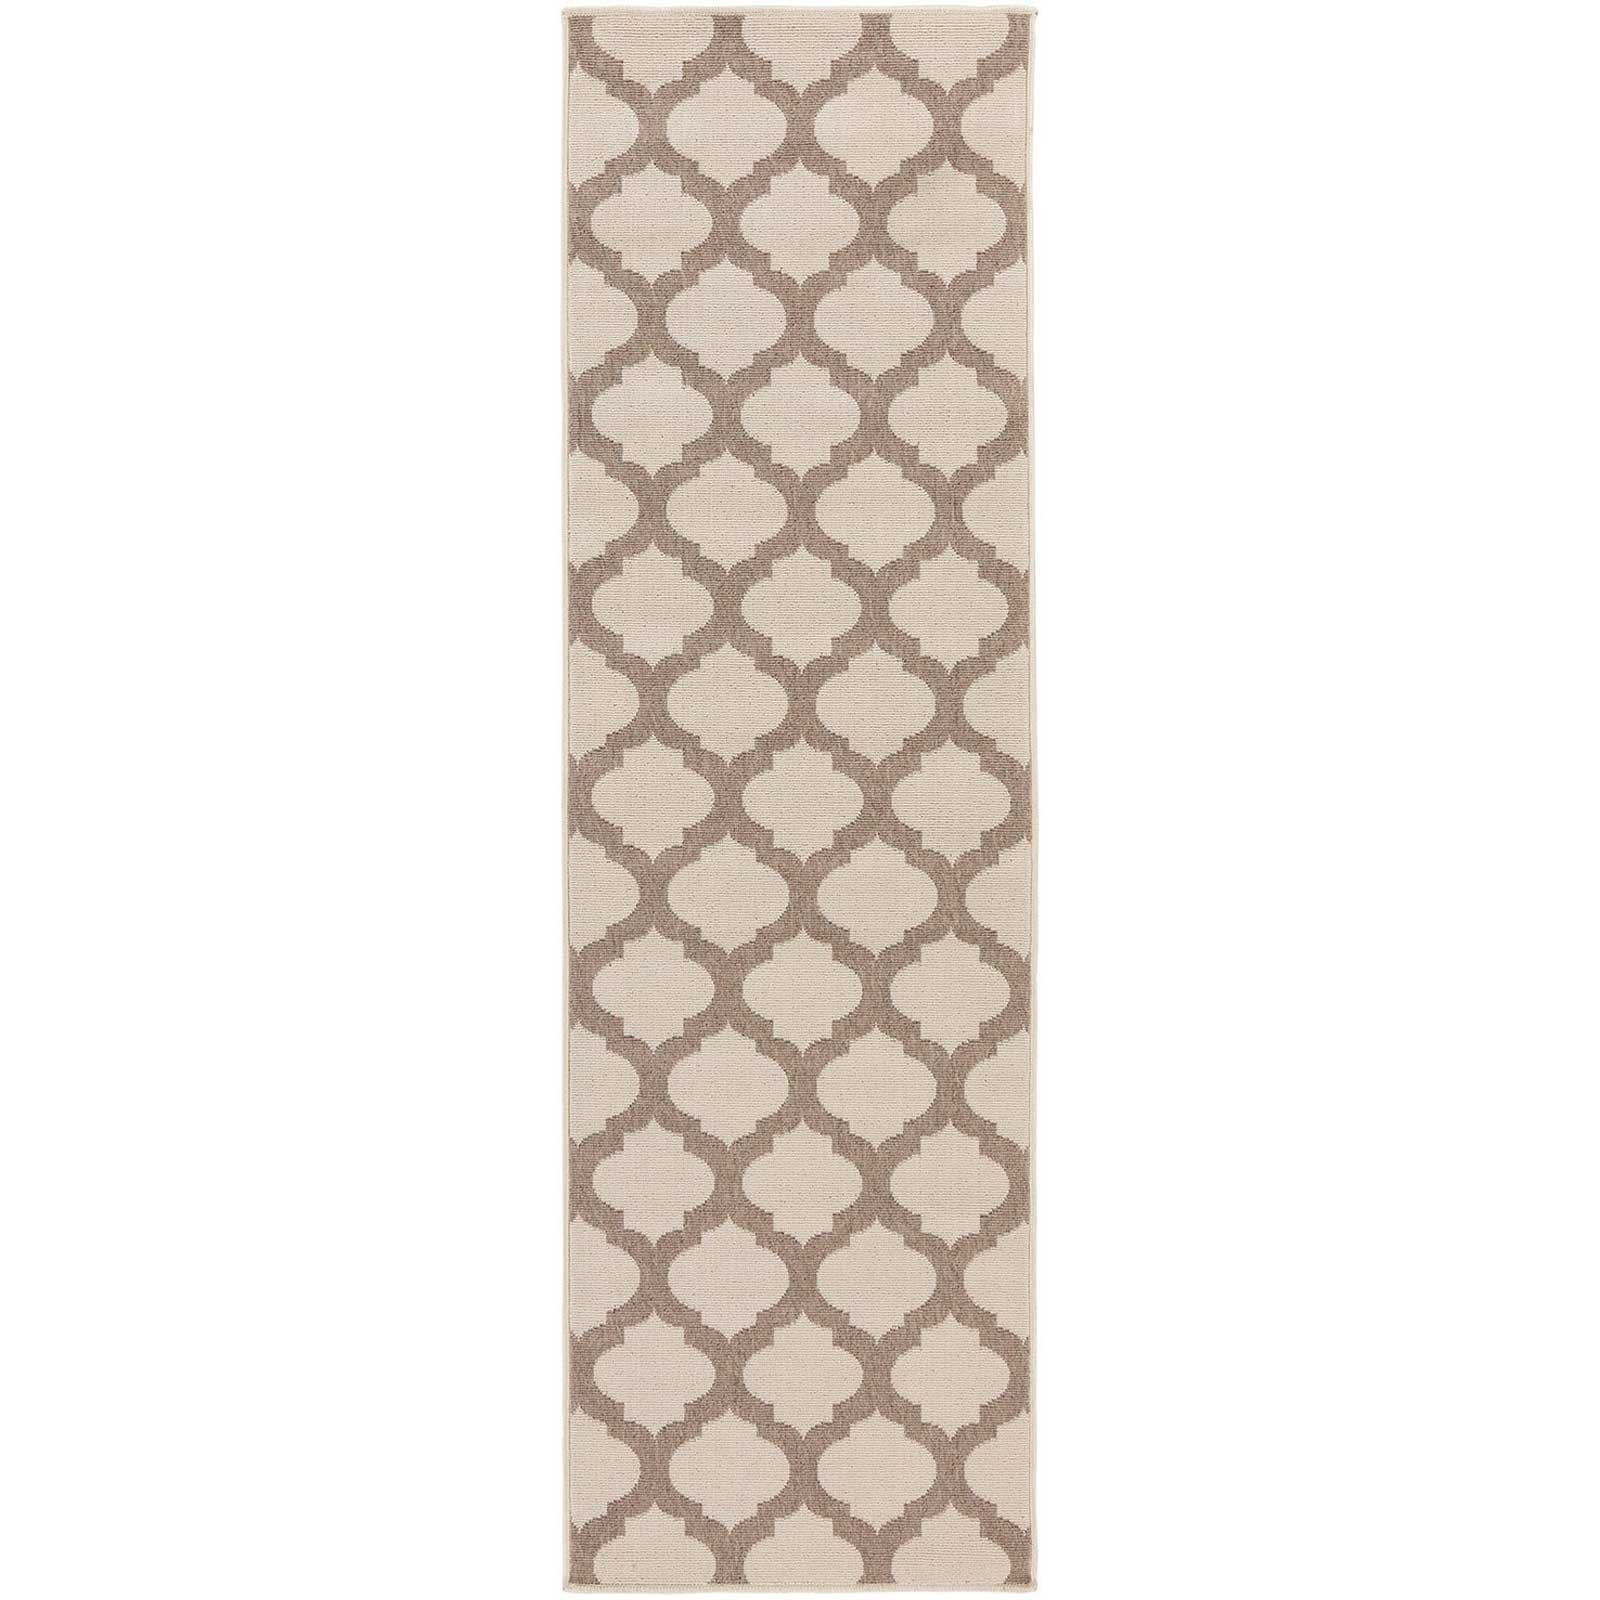 Alfresco Lattice Beige/Taupe Runner Rug